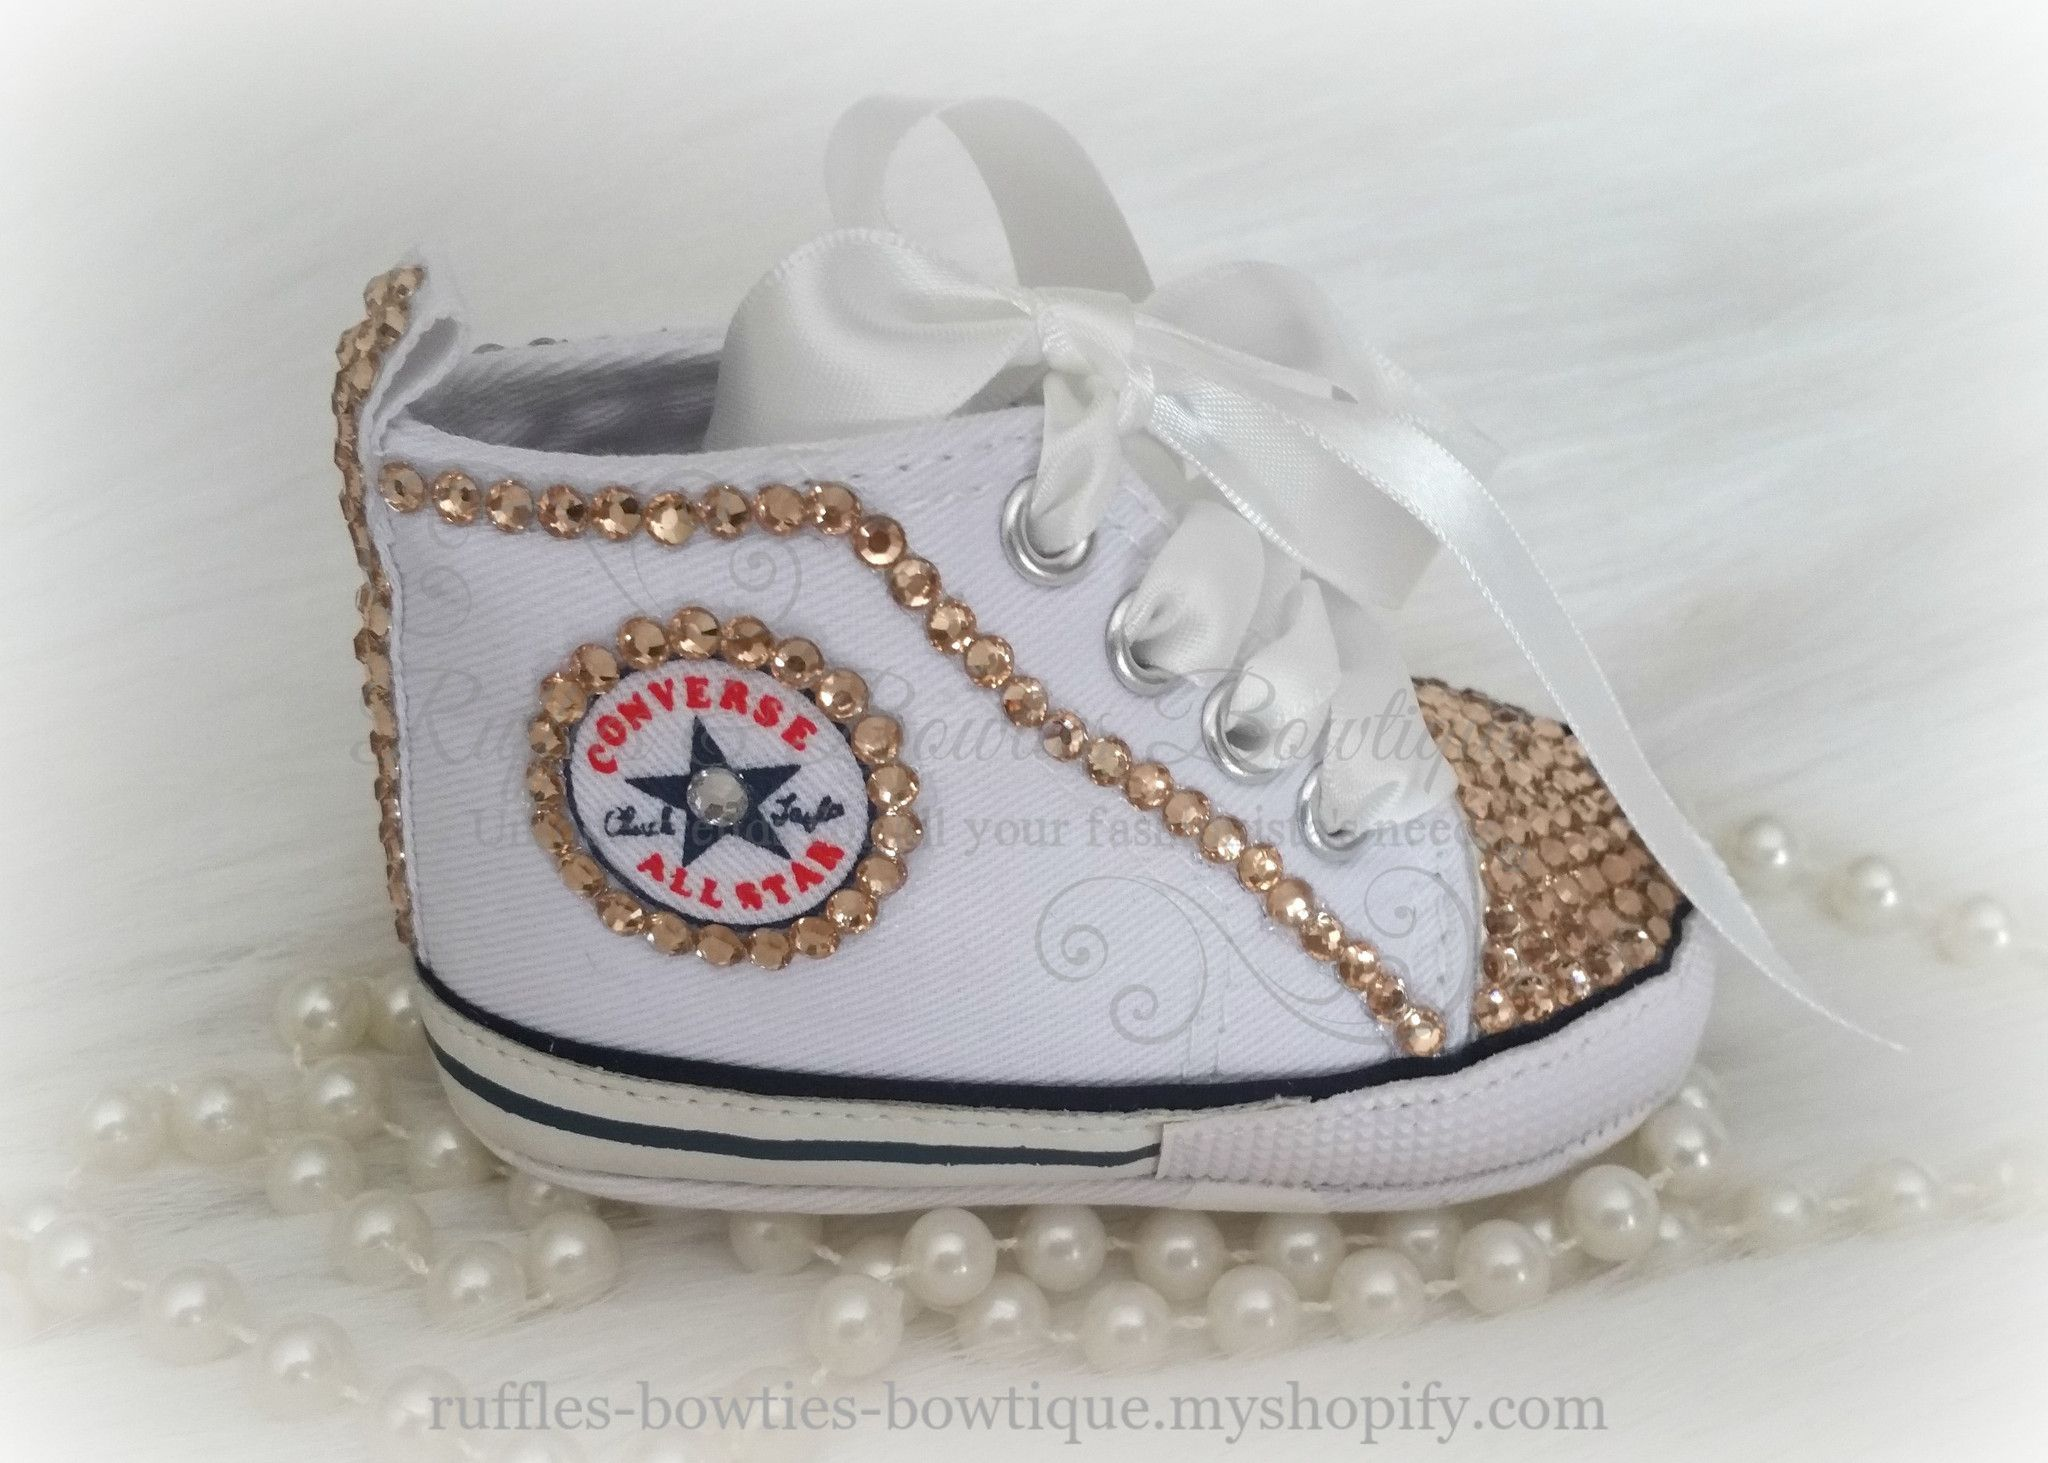 146860e8cdd0 White Crystal Baby Converse High Tops - Crystal Shoes - Pre Walker Shoes -  Baby Girl Shoes - Wedding - Christening - Baptism - Baby - Gold Crystals